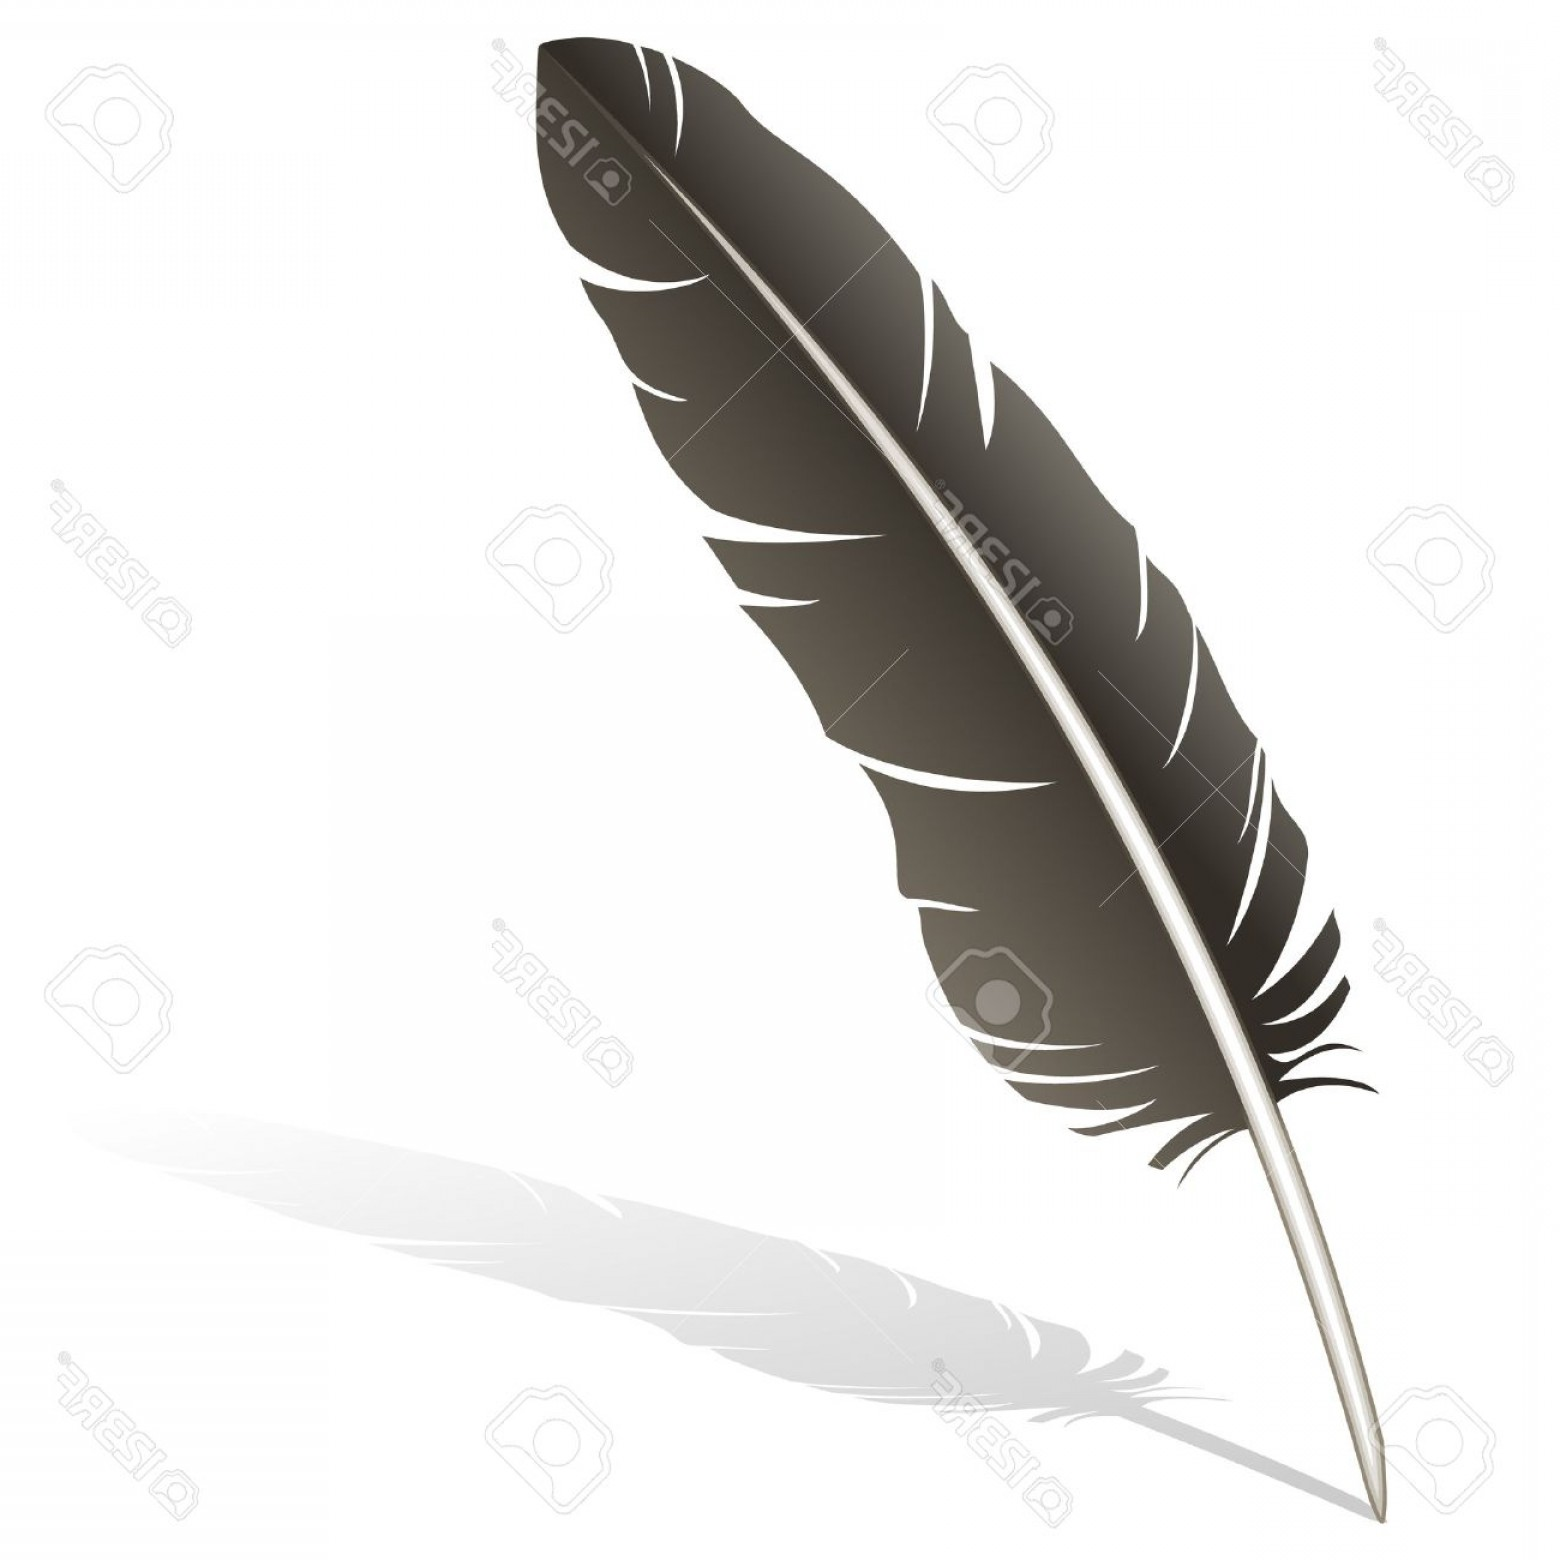 Quill Pen Vector: Photostock Vector Realistic Illustration Of A Feather Quill Pen